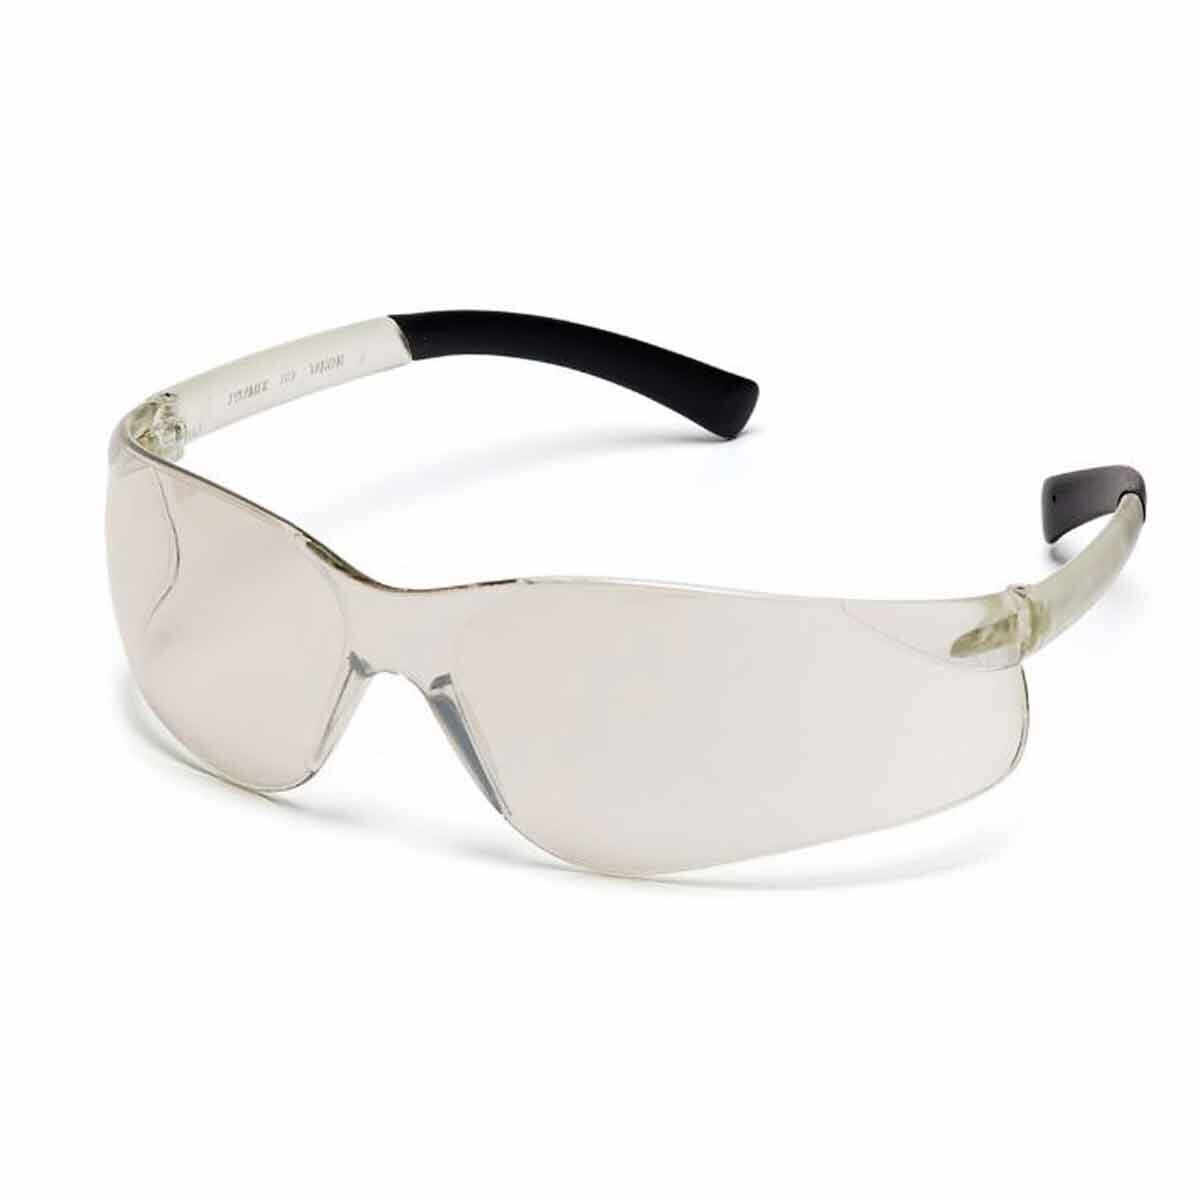 Pyramex Ztek Clear Eye Protection Safety Glasses